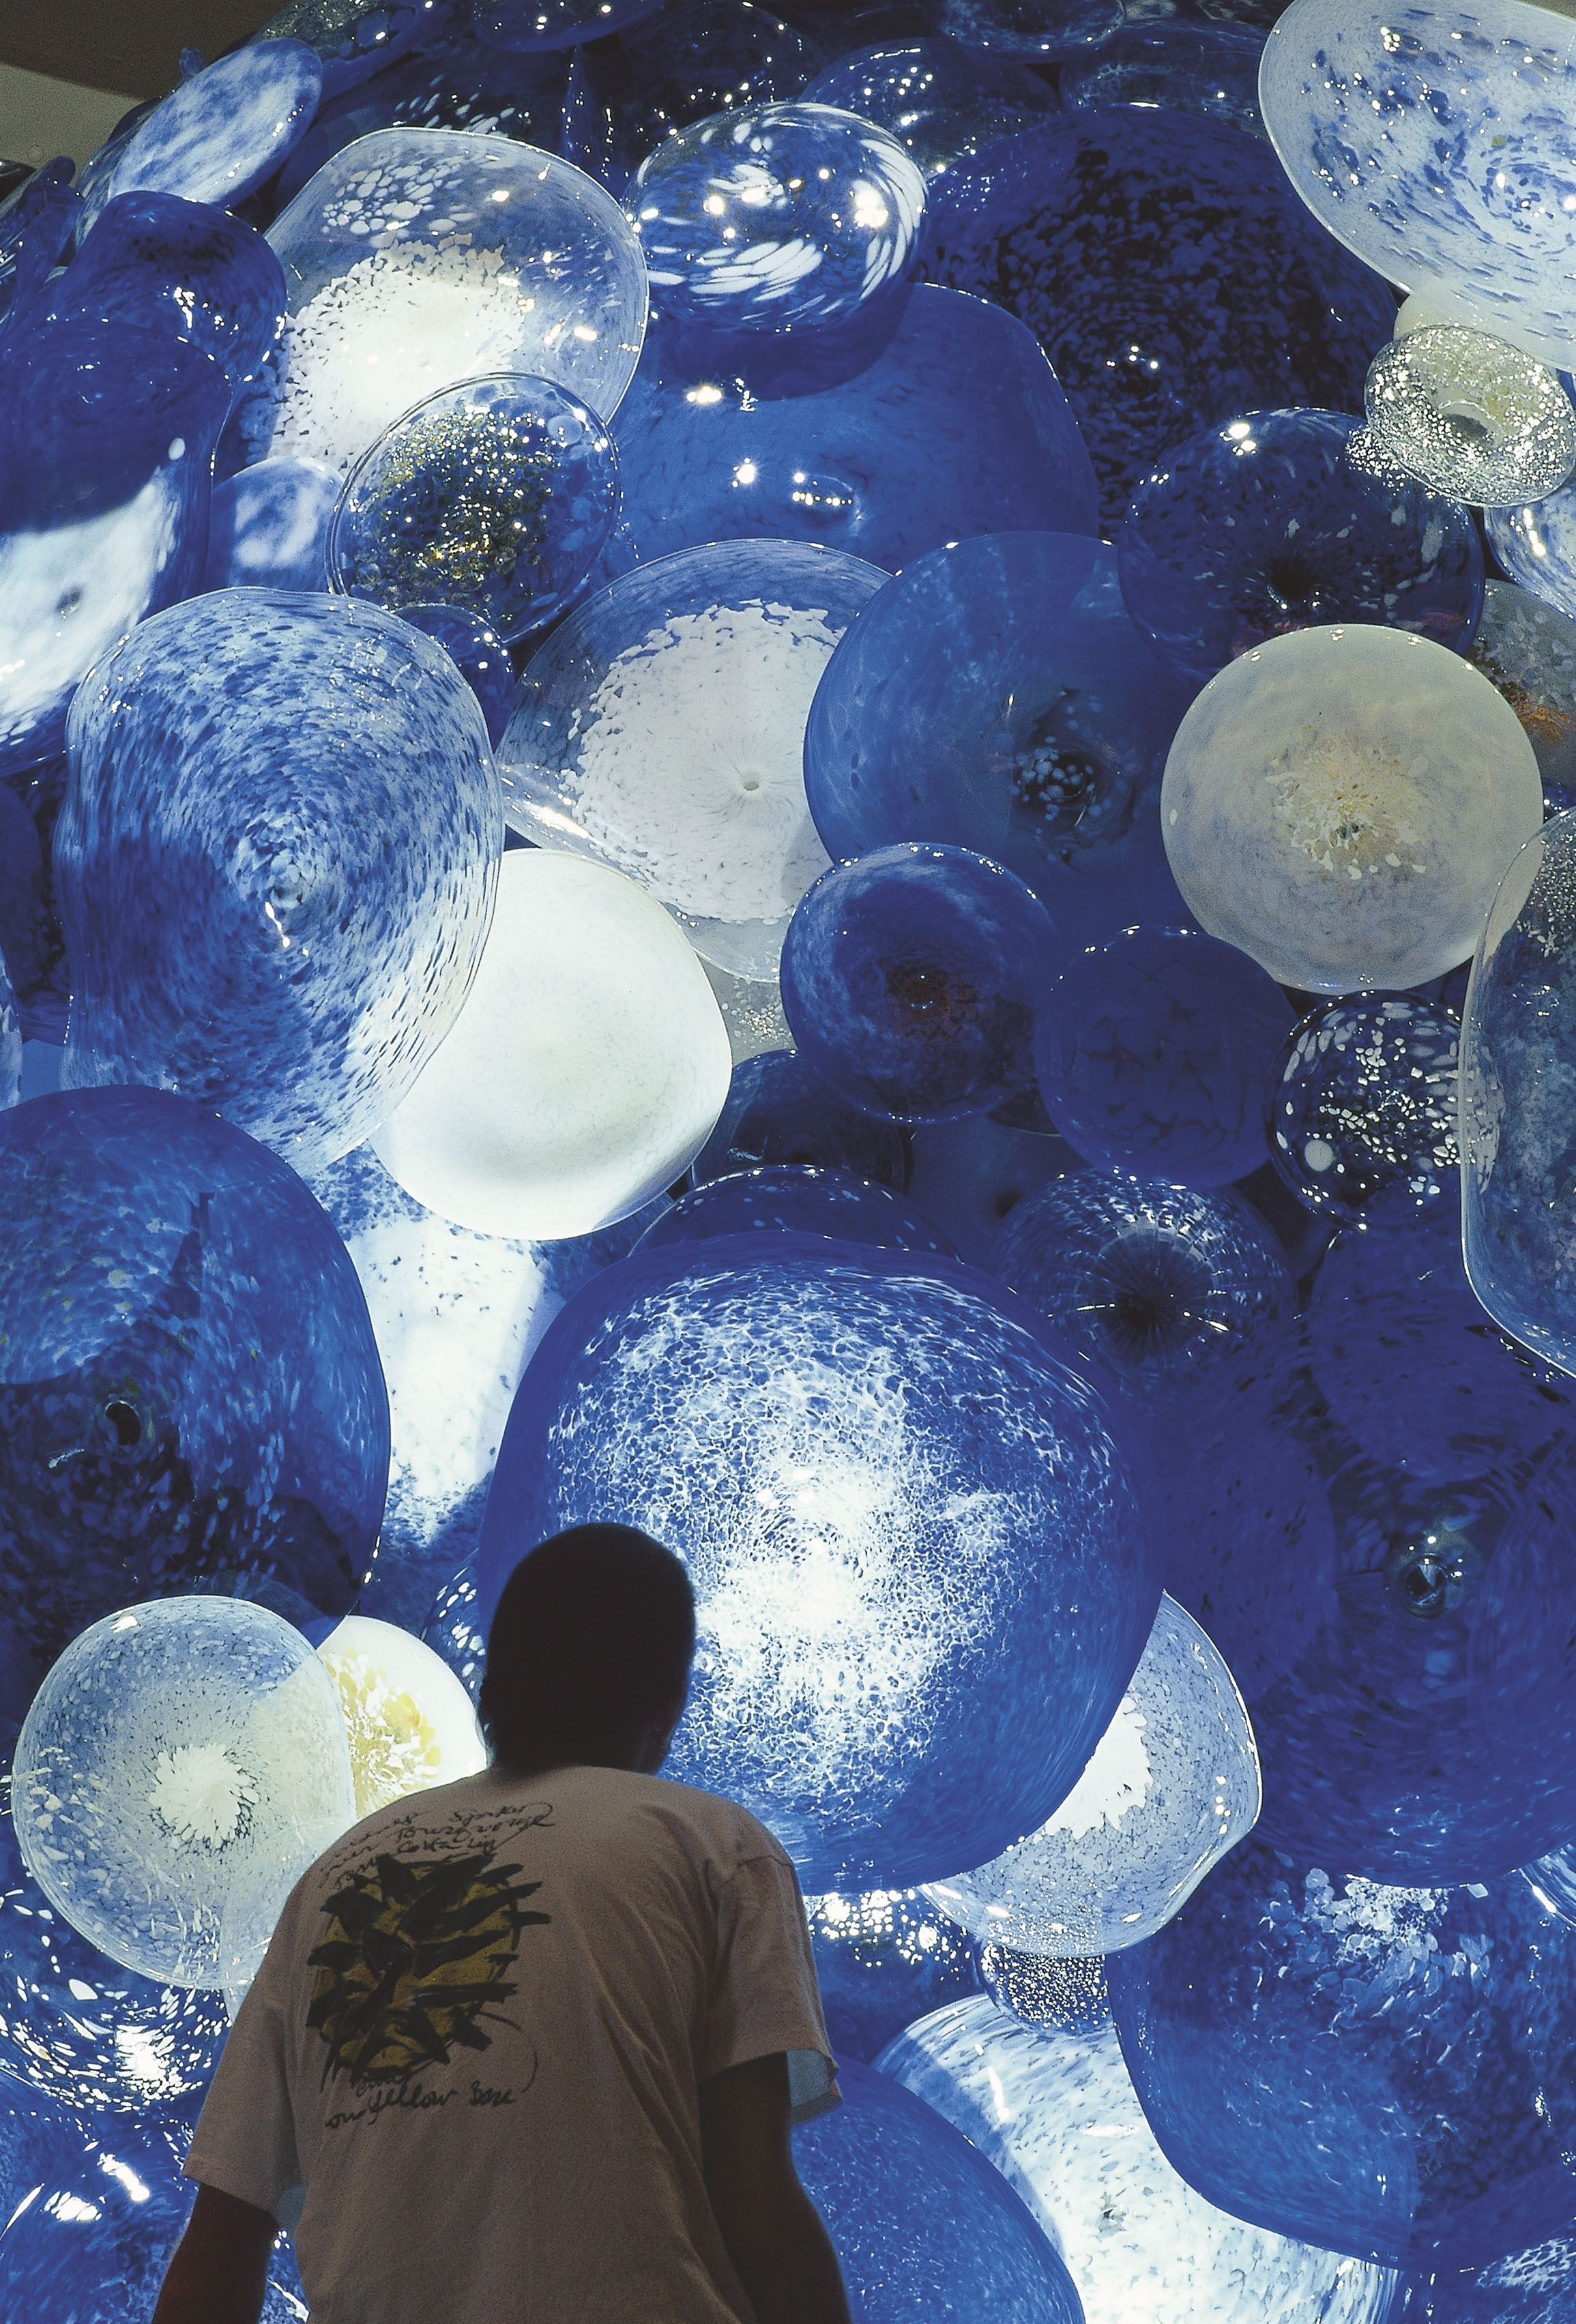 Countless round glass pieces were assembled together over